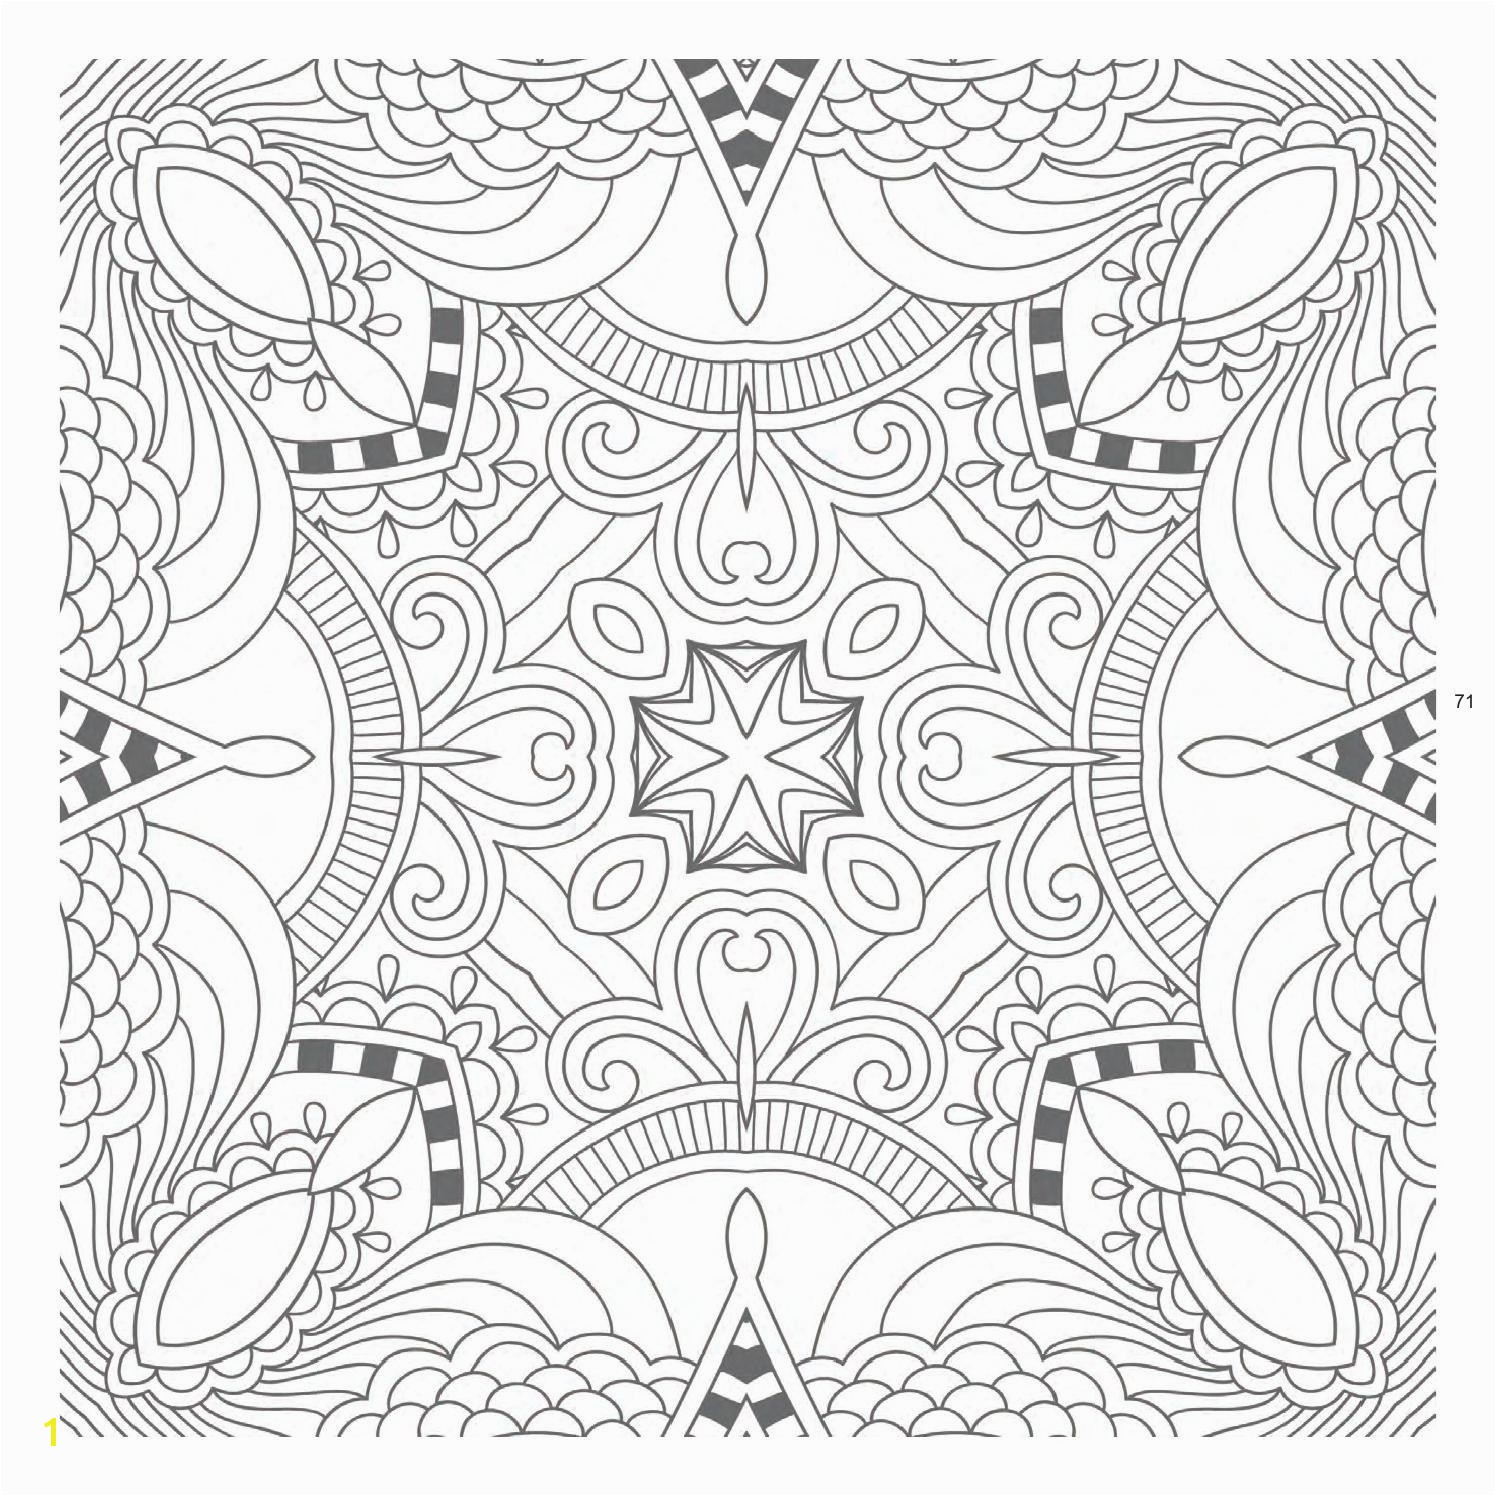 Lds Coloring Pages Fresh Printable Coloring Pages From the Friend A Link to the Lds Friend